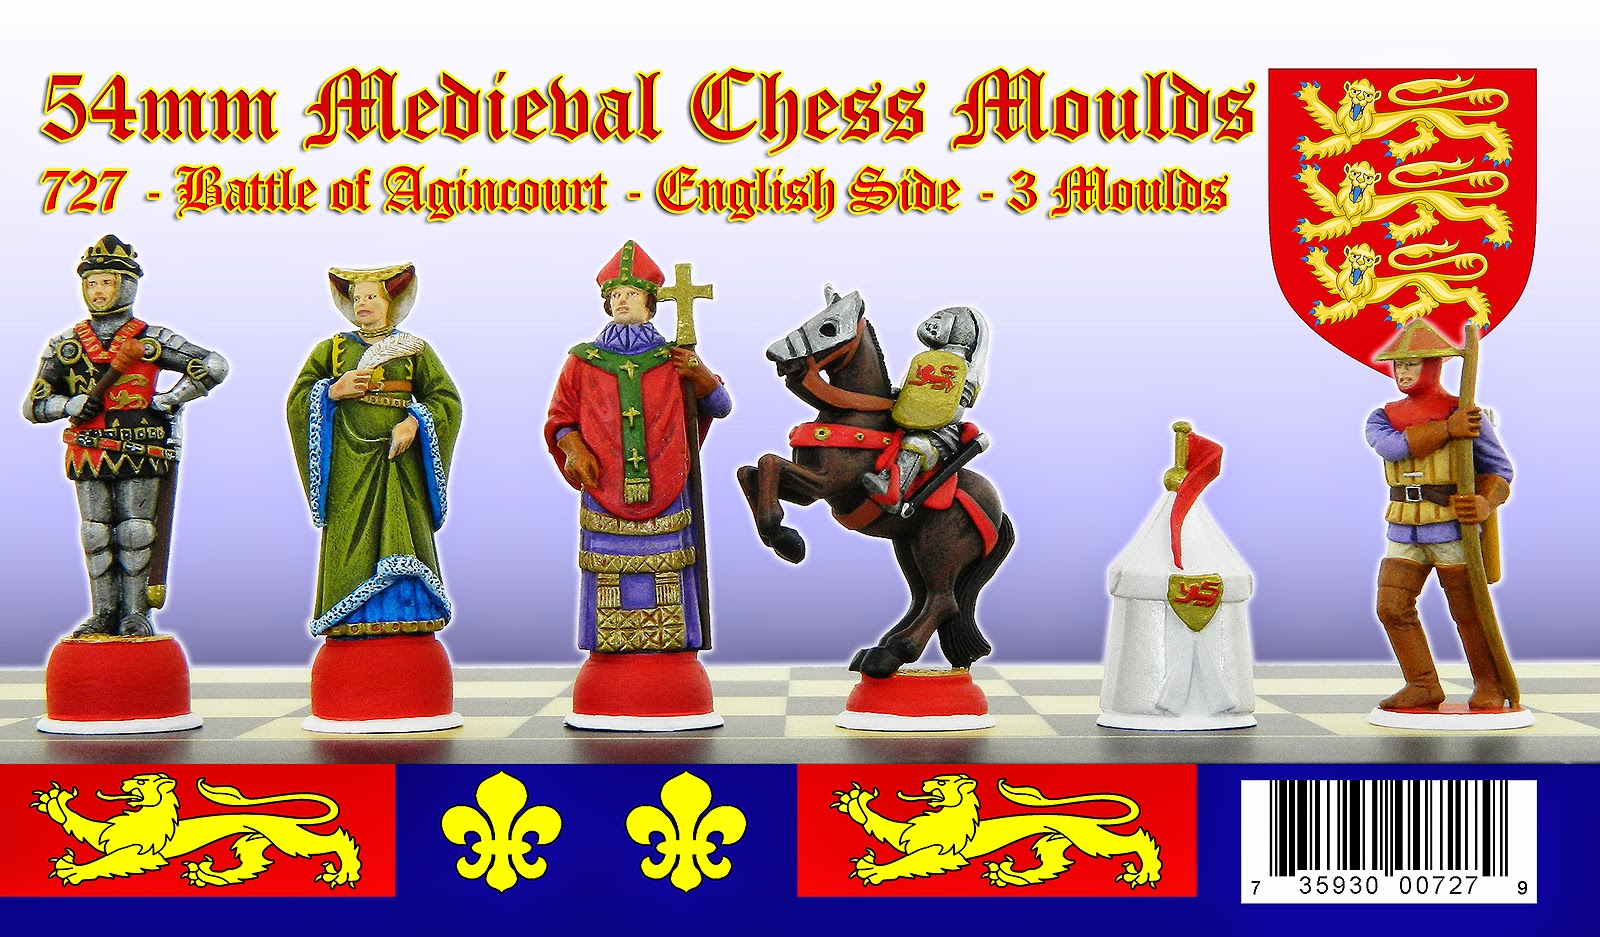 http://shop.princeaugust.ie/pa727-medieval-chess-set-english-side-moulds/